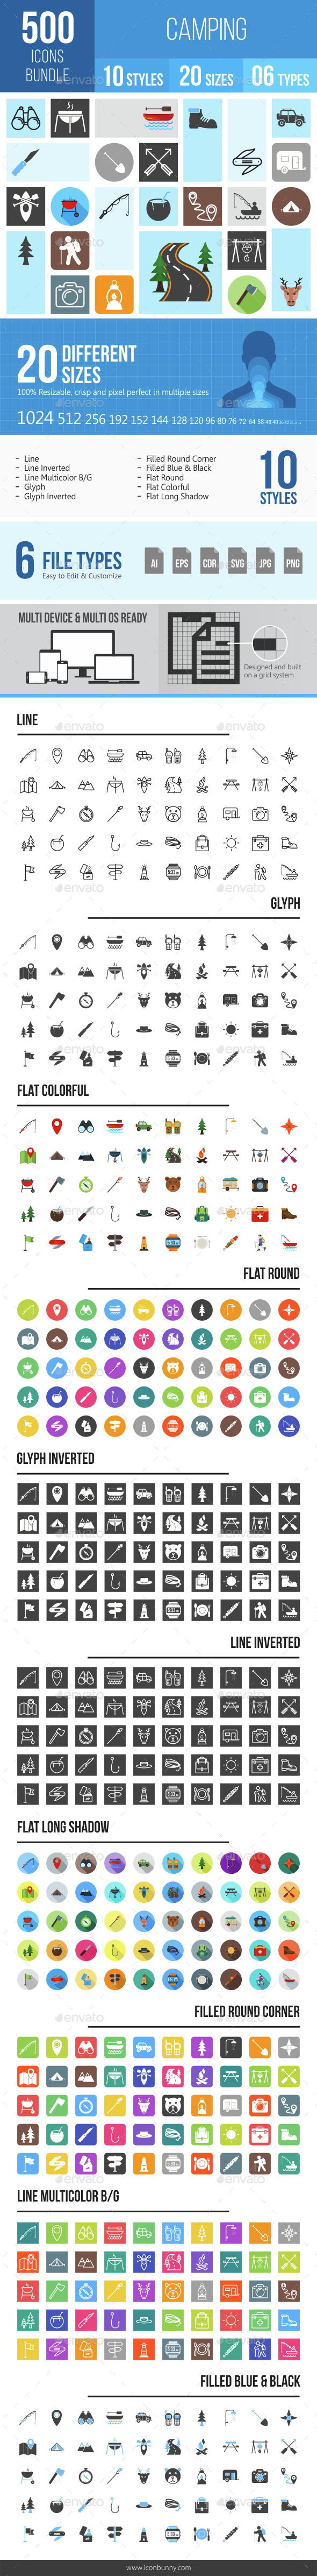 500 Camping Icons Bundle - Icons